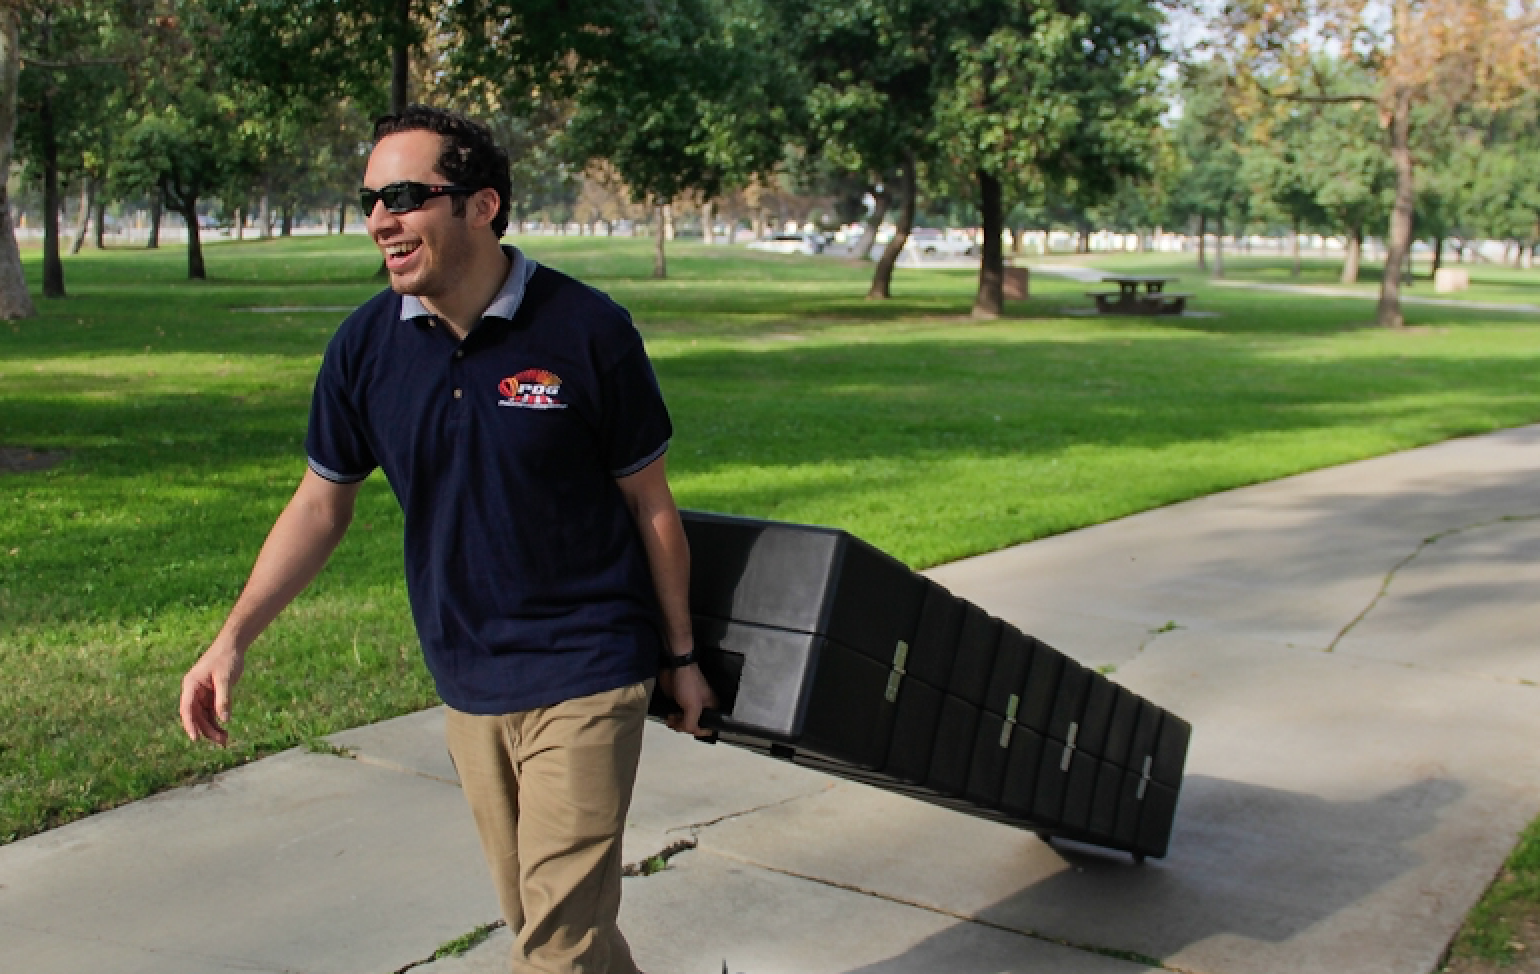 Human pulling a Rhino Roller Hard Case through the park while smiling and wearing sunglasses